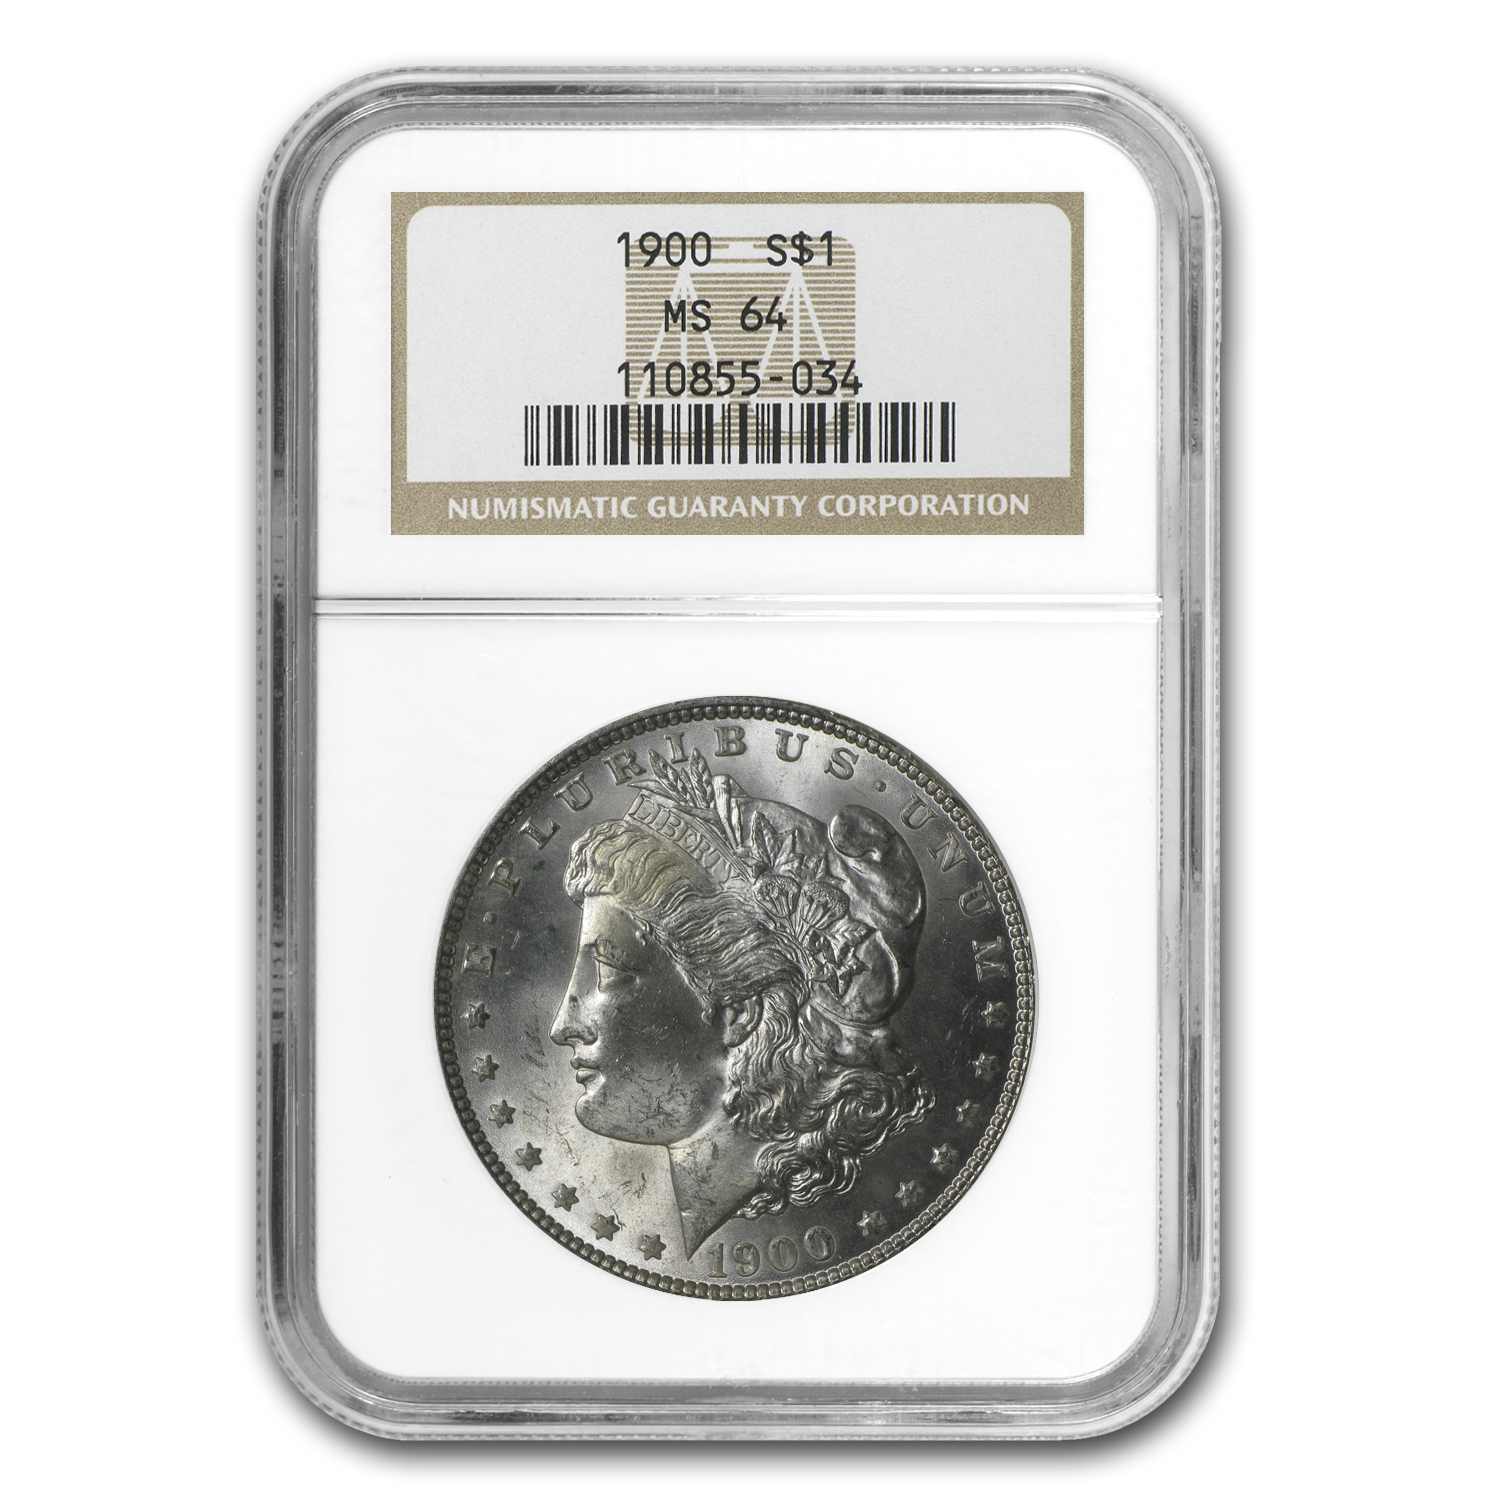 1900 Morgan Dollar - MS-64 NGC